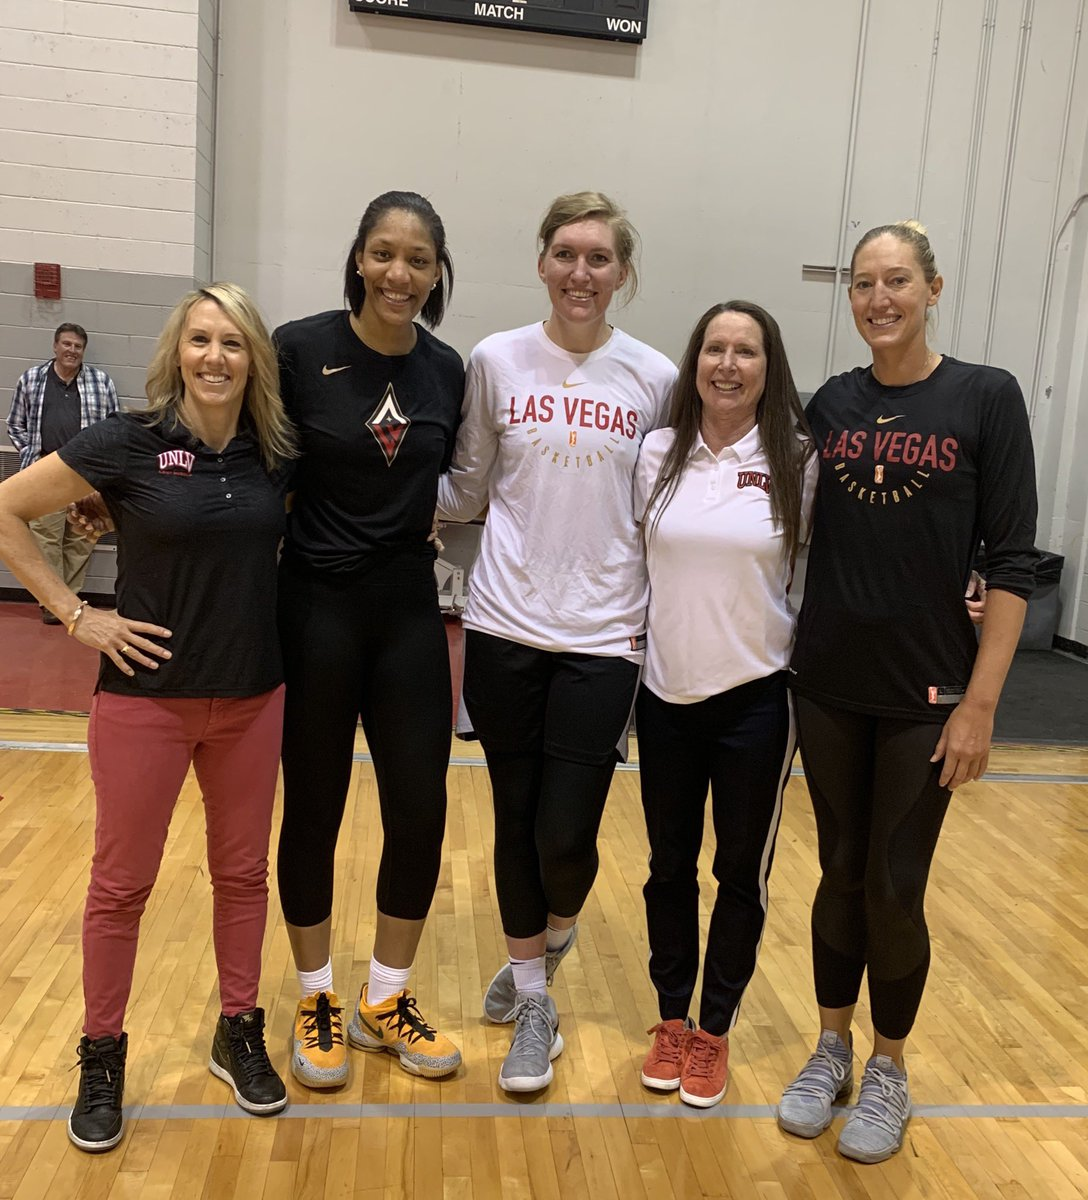 Everybody on our @UNLVLadyRebels is taking their game up a level. We have the WNBA @LVAces working out! The BEST of the BEST @_ajawilson22 and @CarolynSwords in our house!! #TotalWinners #BEaREBEL